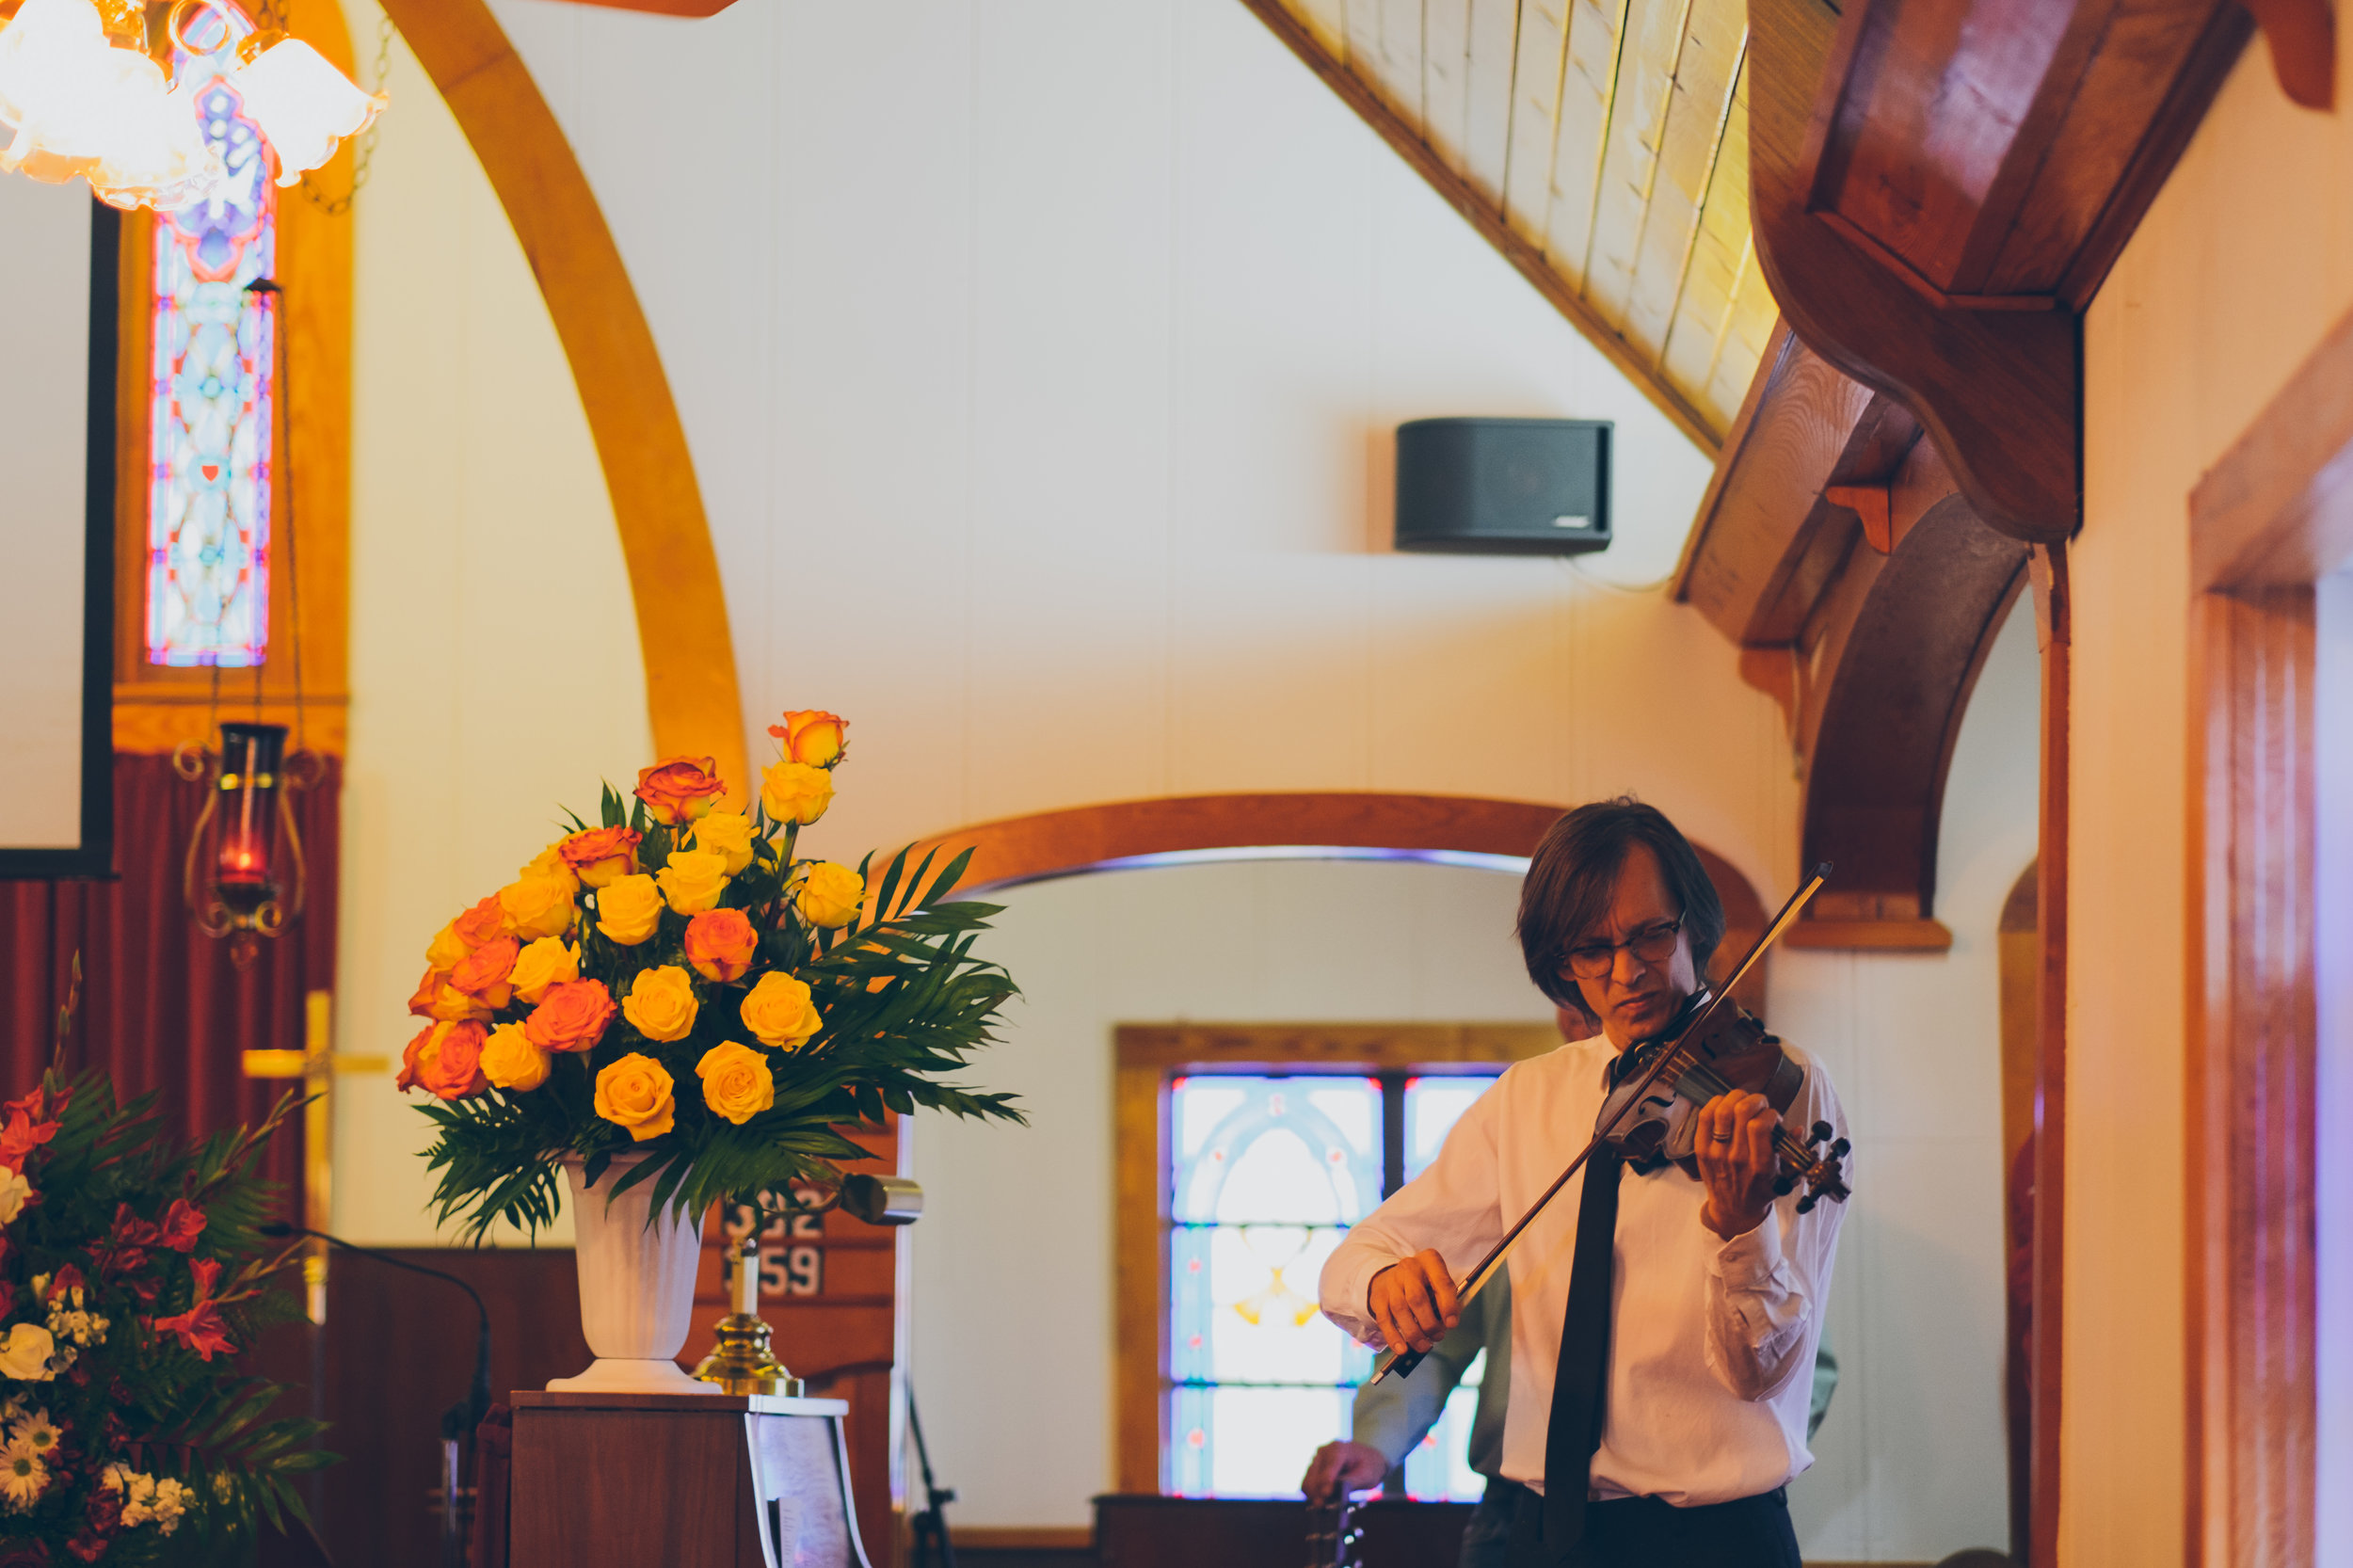 My cousin, Reggie Rueffer, playing at Richard's memorial service. Reggie is a professional musician and has played with many big names, including Charlie Pride.